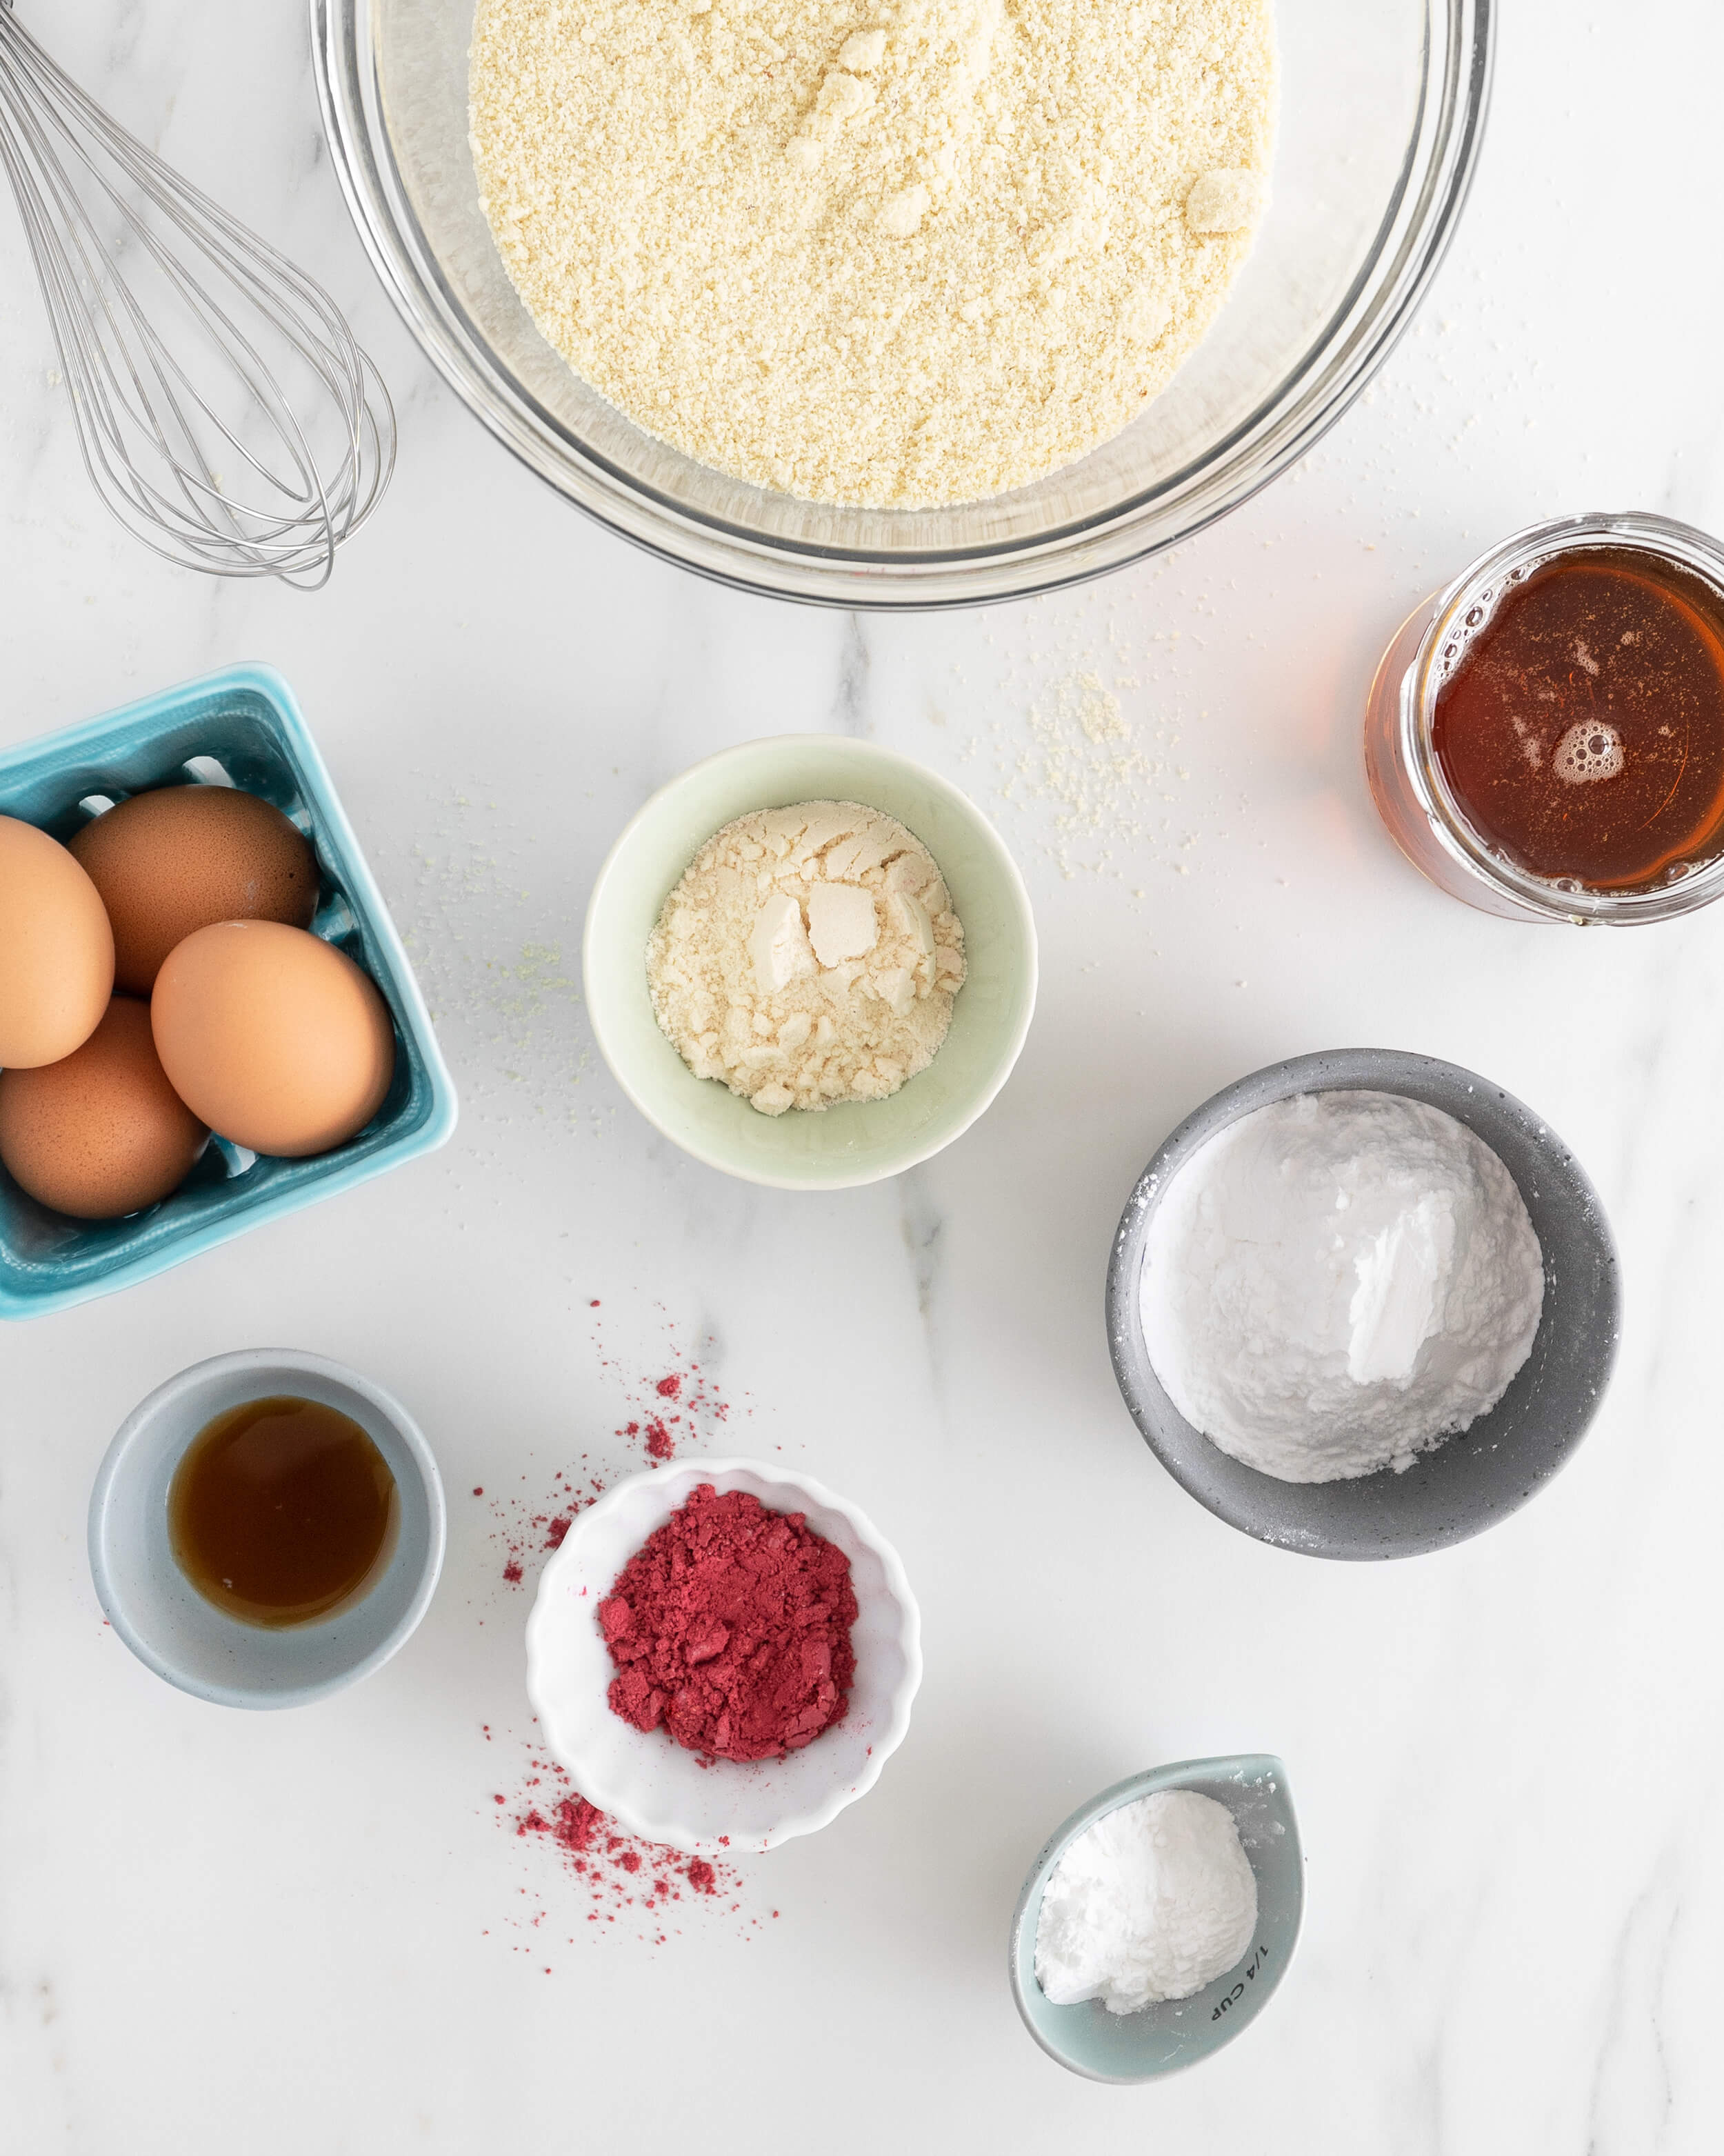 Ingredients in almond flour cake